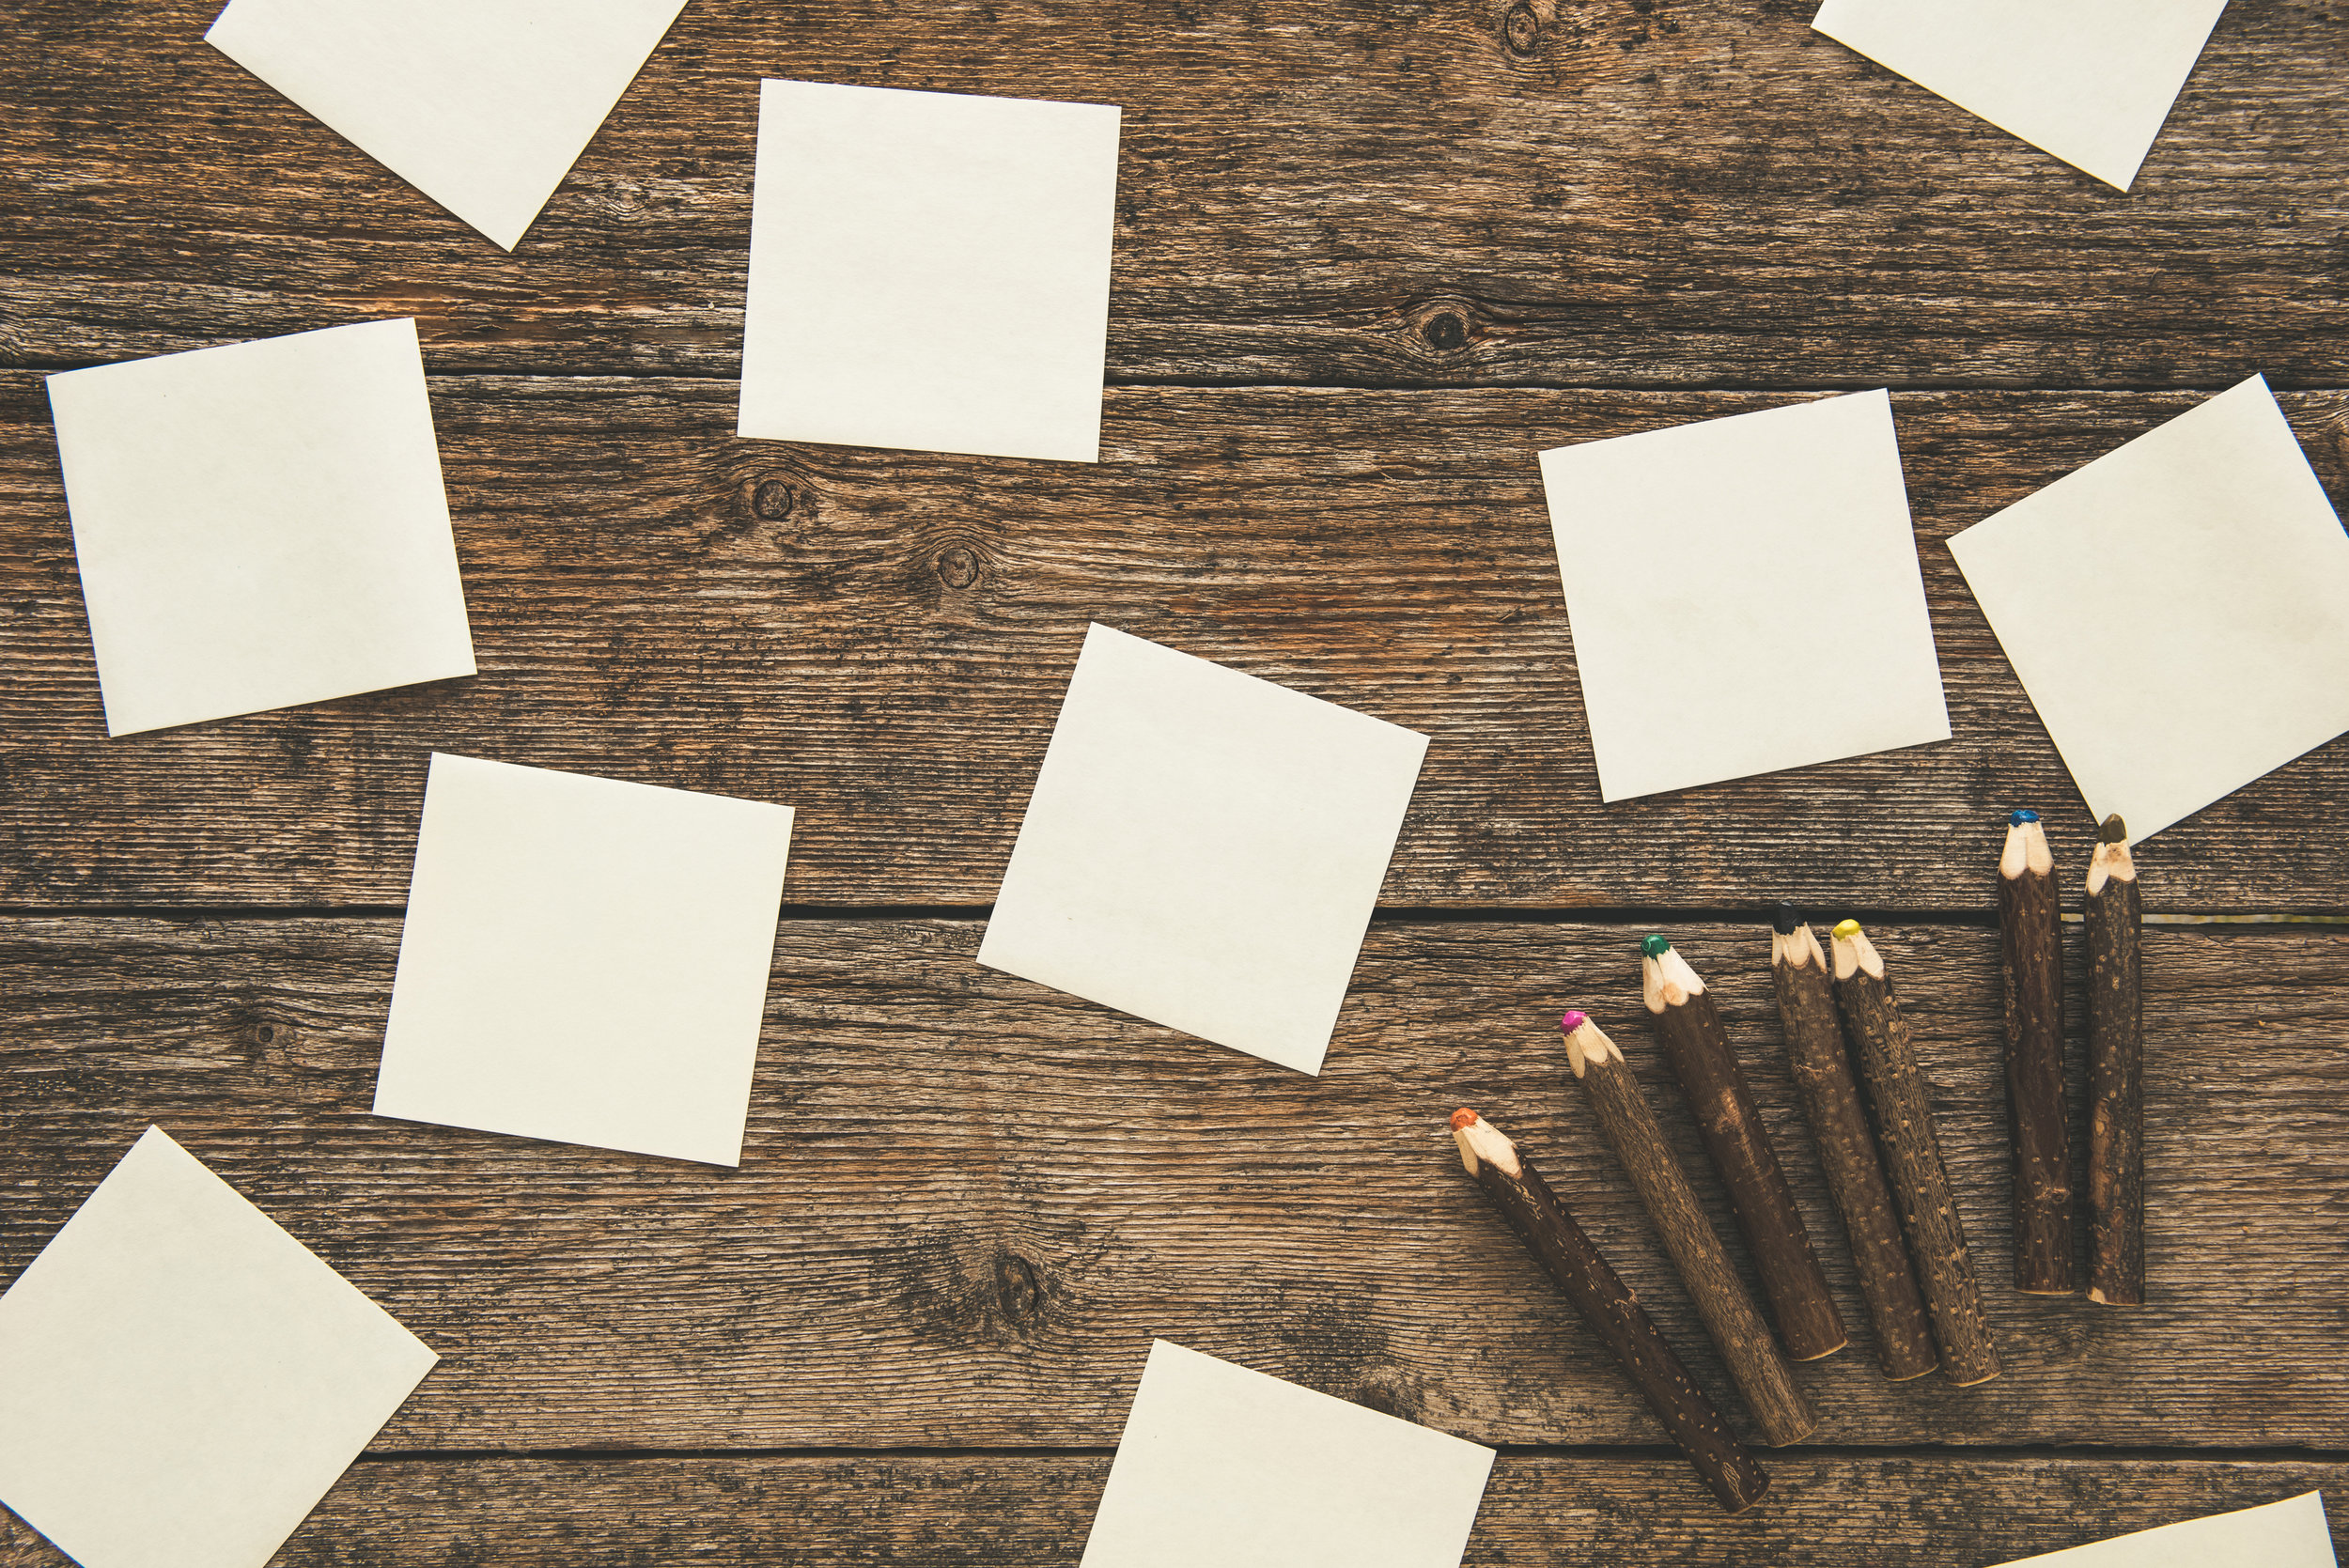 white-sticky-notes-and-set-of-colored-pencils-on-3PBUV68.jpg